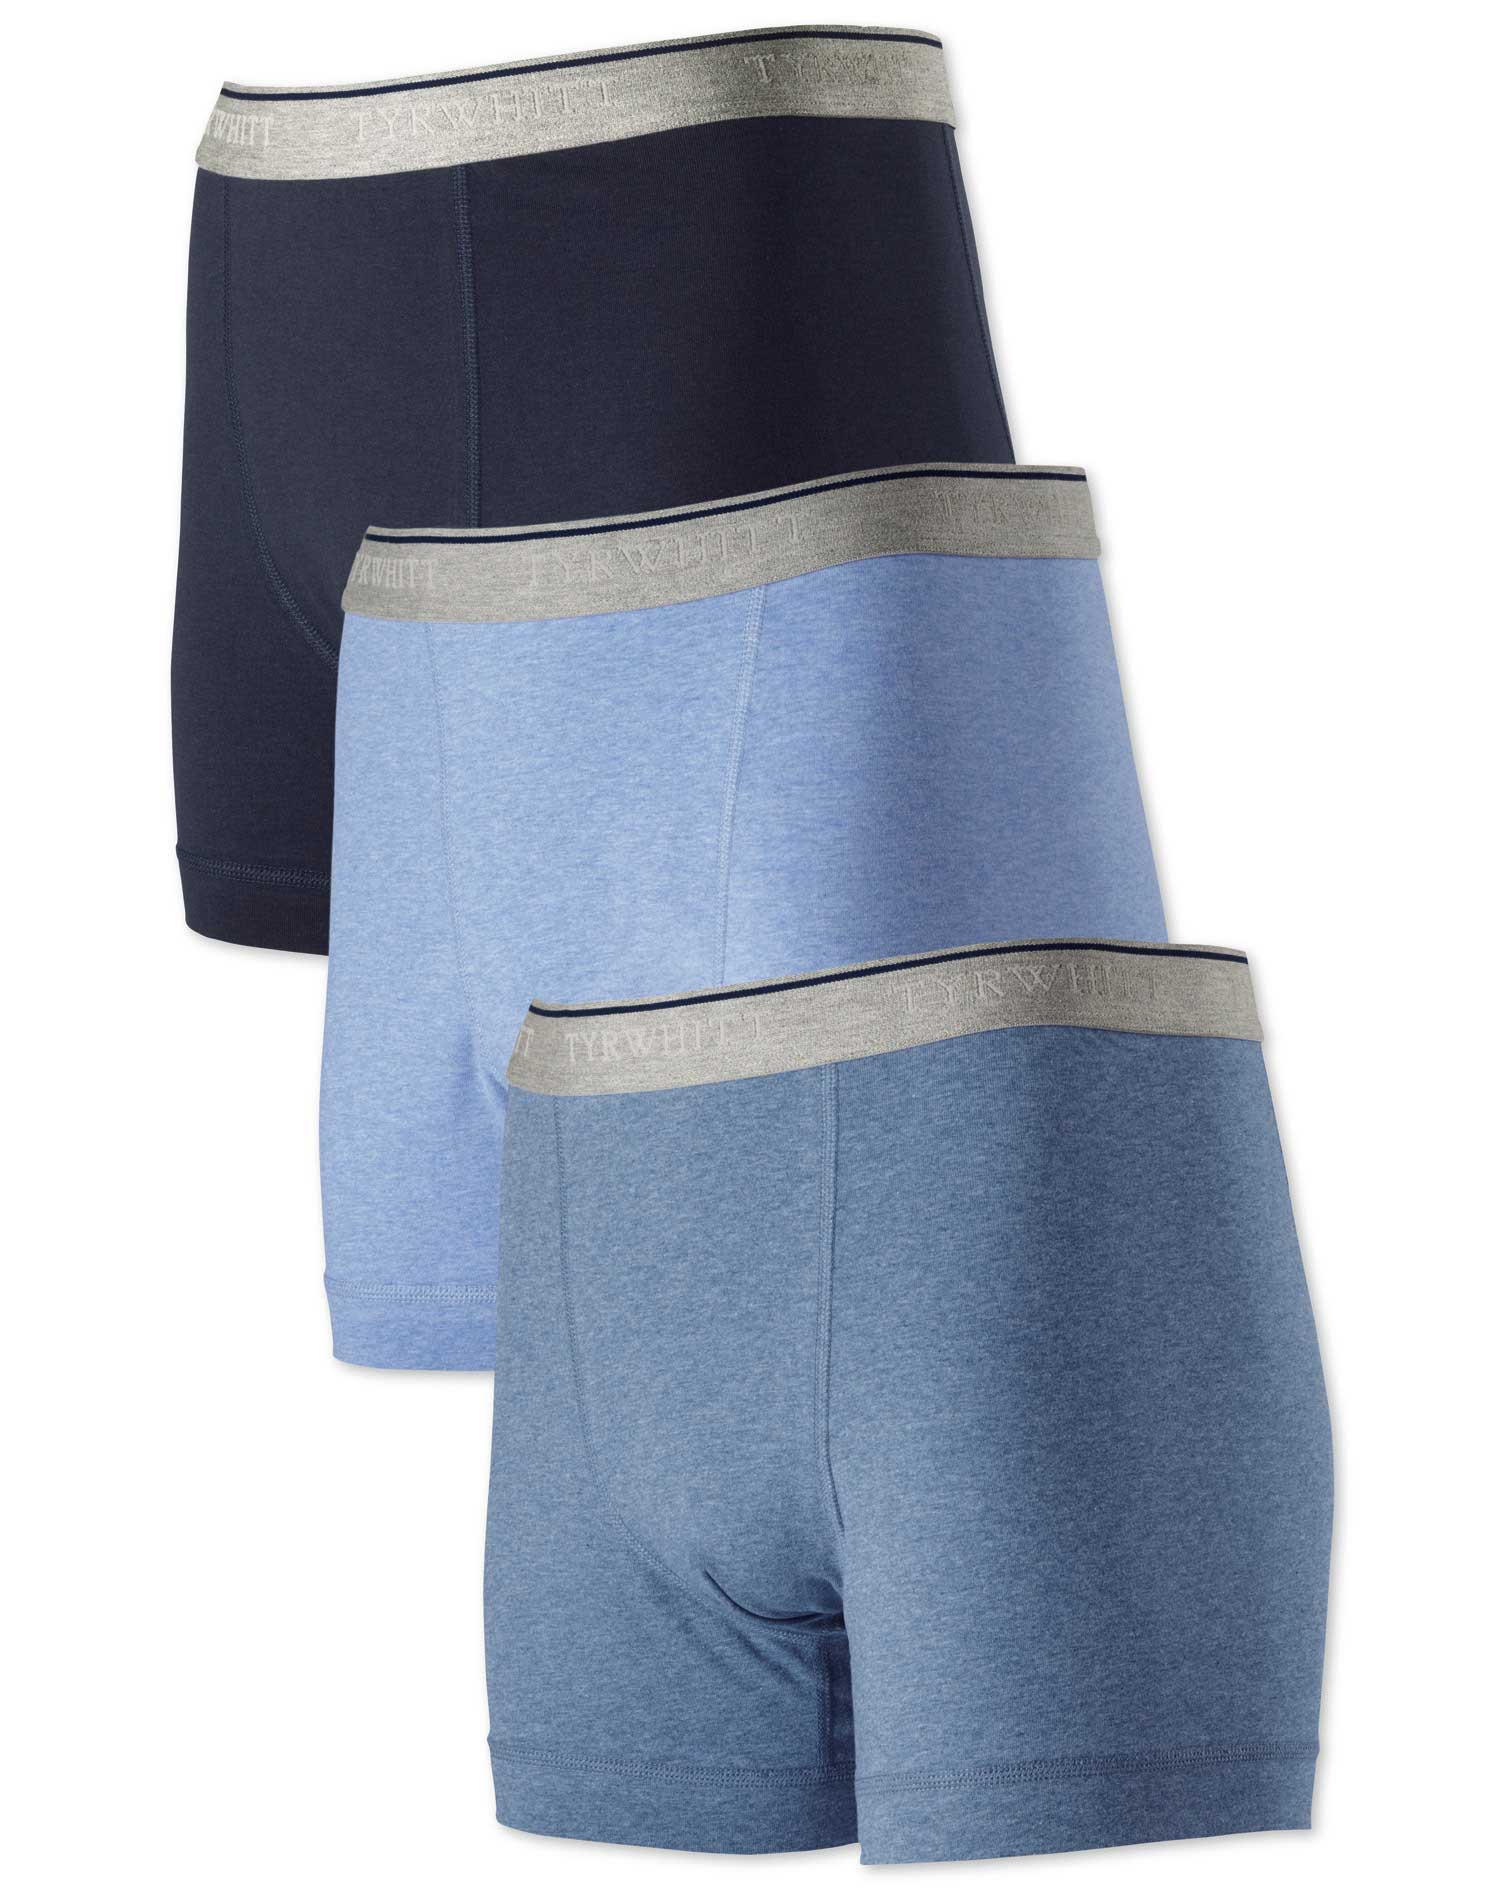 Blue Jersey 3 Pack Trunks Size XL by Charles Tyrwhitt